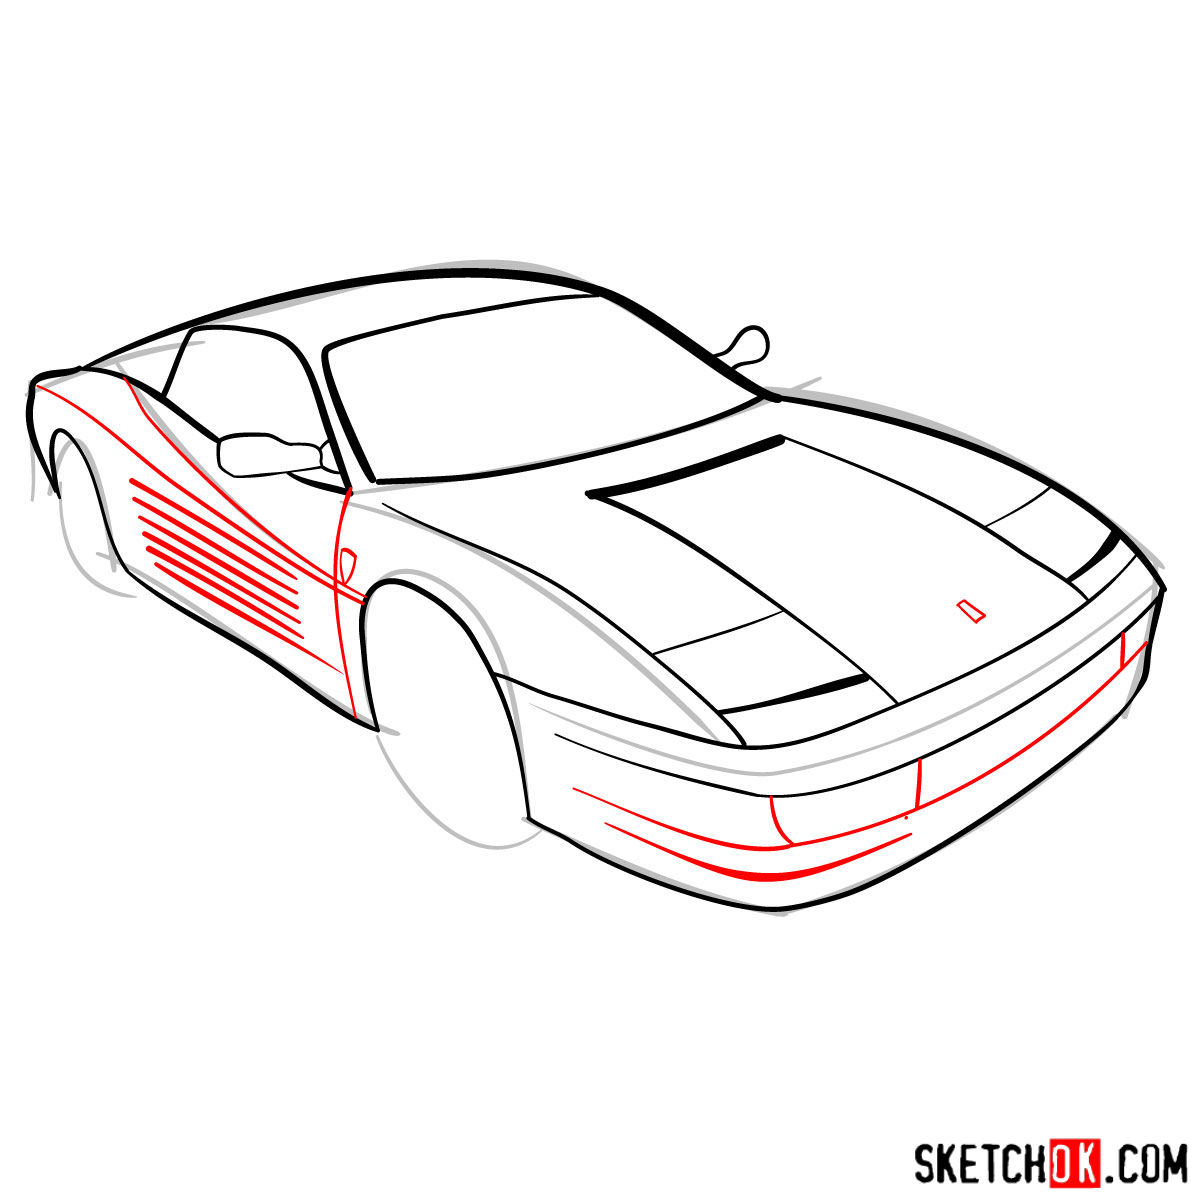 1200x1200 How To Draw Ferrari Testarossa